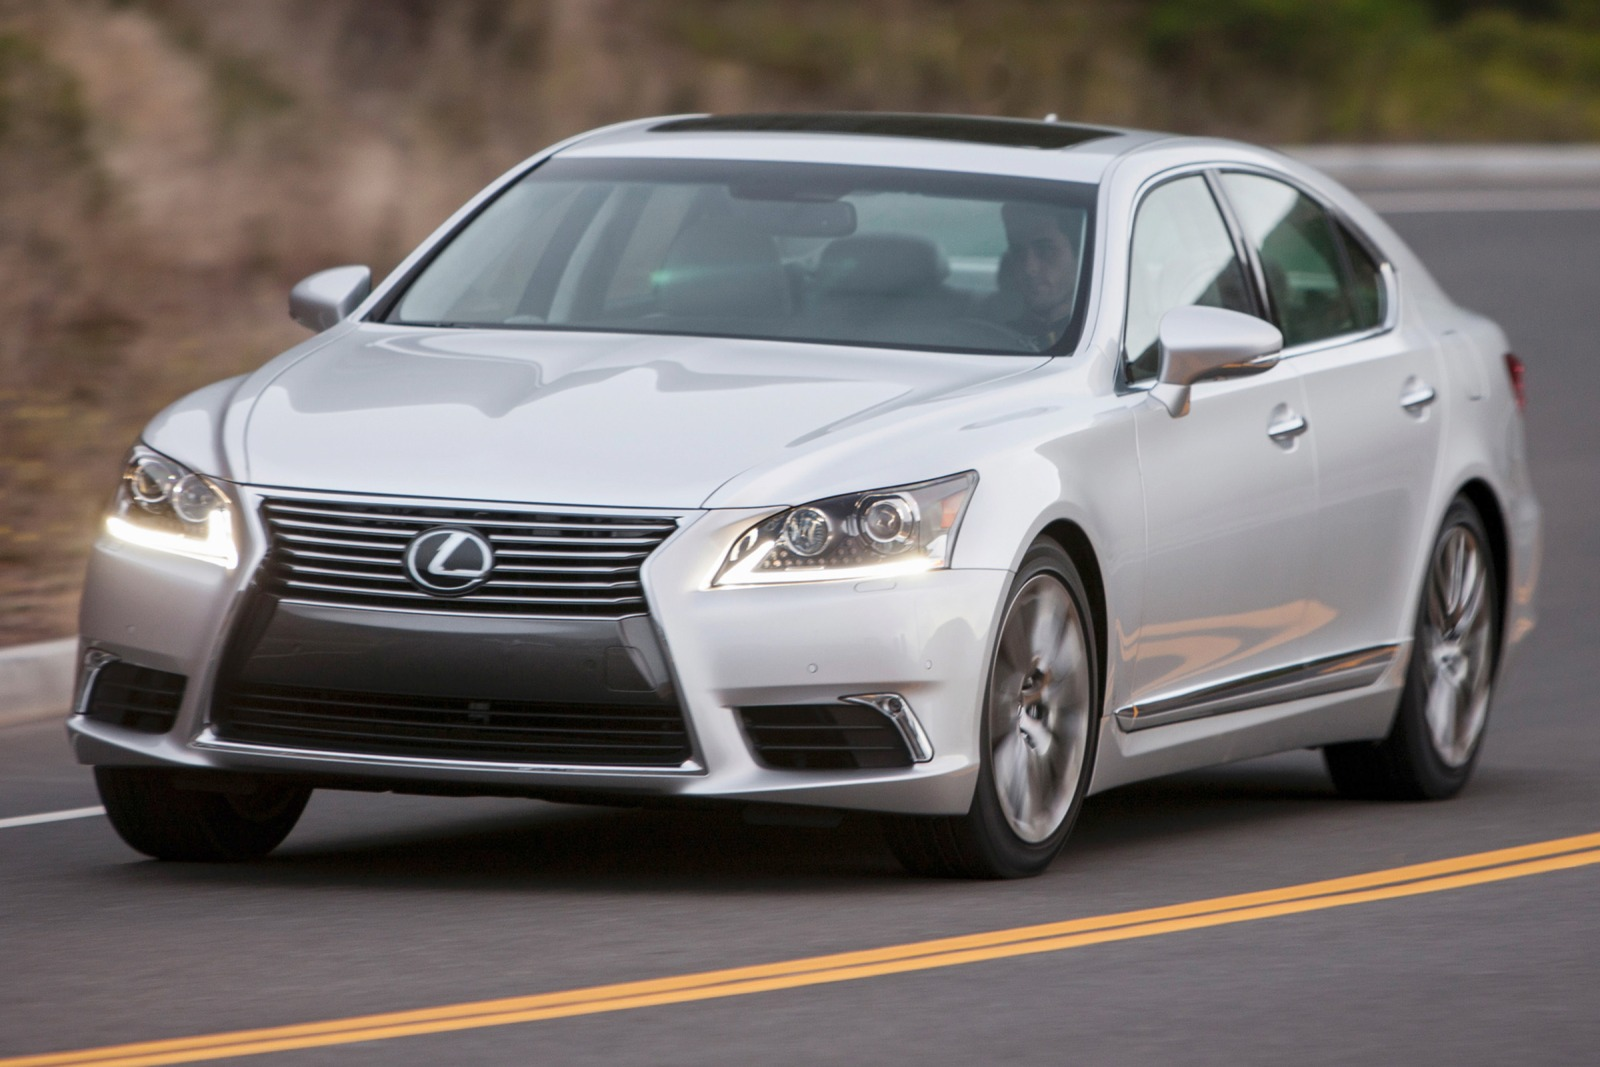 2017 Lexus LS460 AWD photo - 3